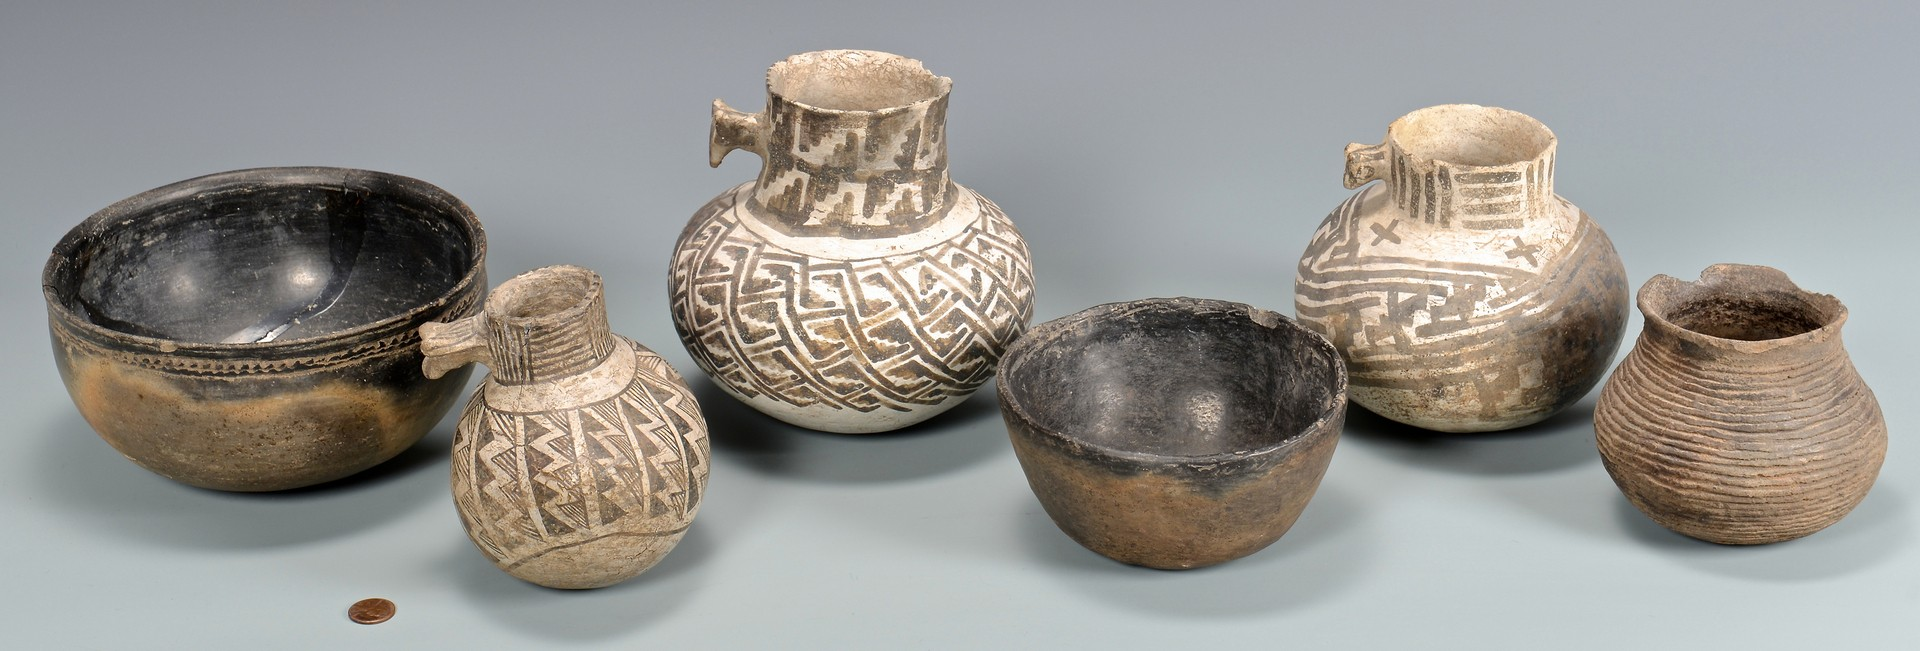 Lot 523: 6 Native American Pottery Items, incl. Anasazi